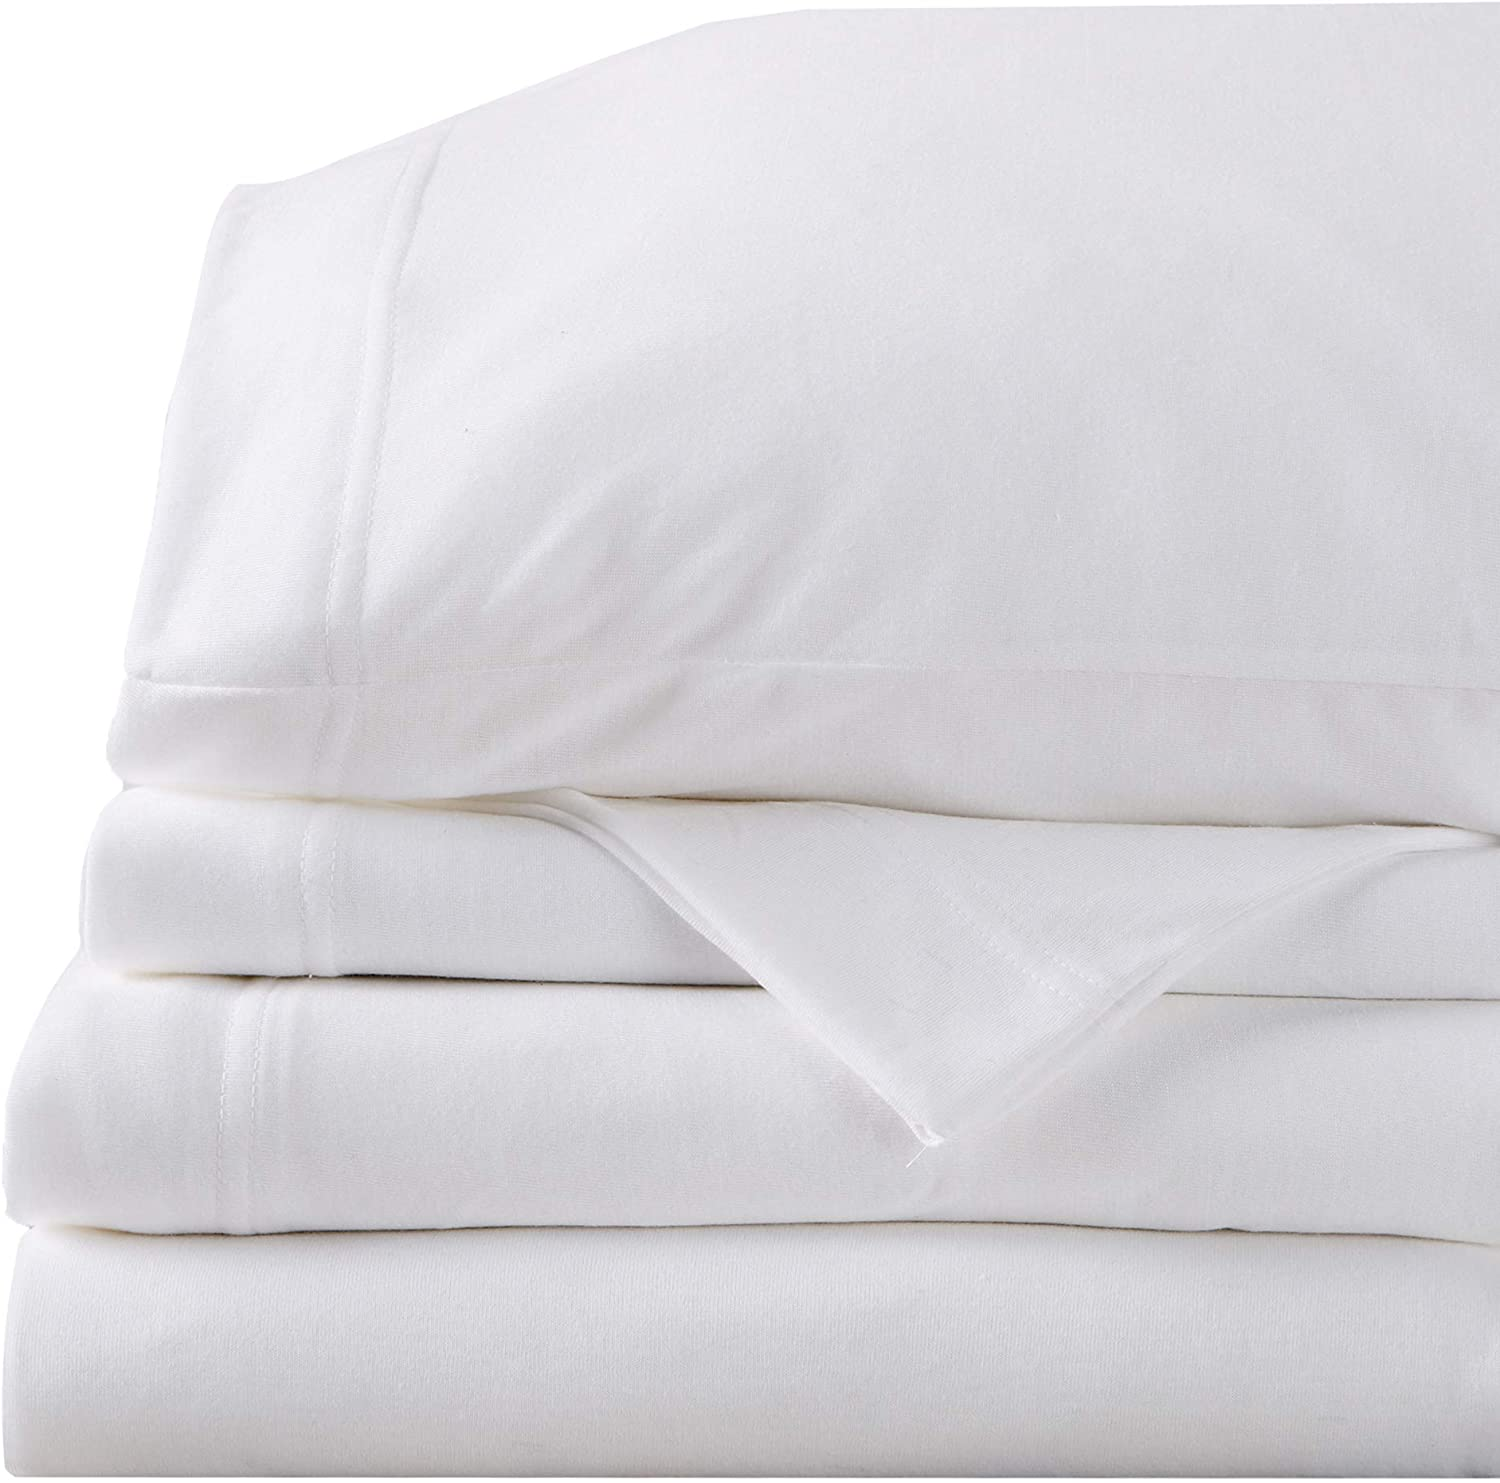 Great Bay Home Super Soft Tech Knit Jersey Sheets. Breathable Lightweight T-Shirt Sheet Set with 16